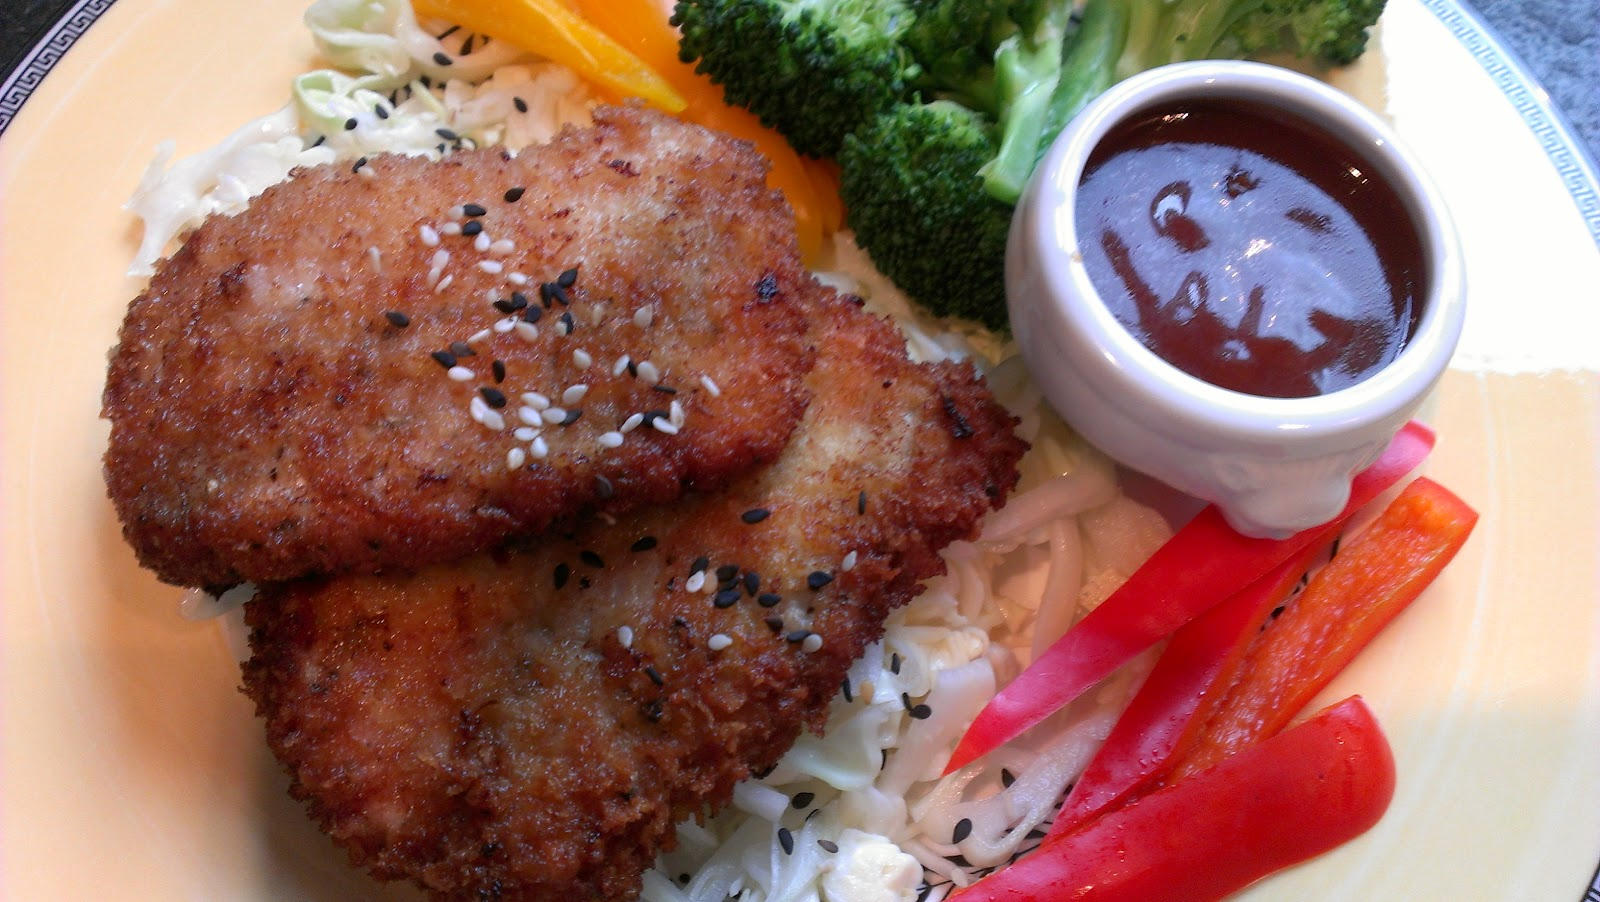 Got it, Cook it: Tonkatsu, Japanese Fried Pork Cutlet